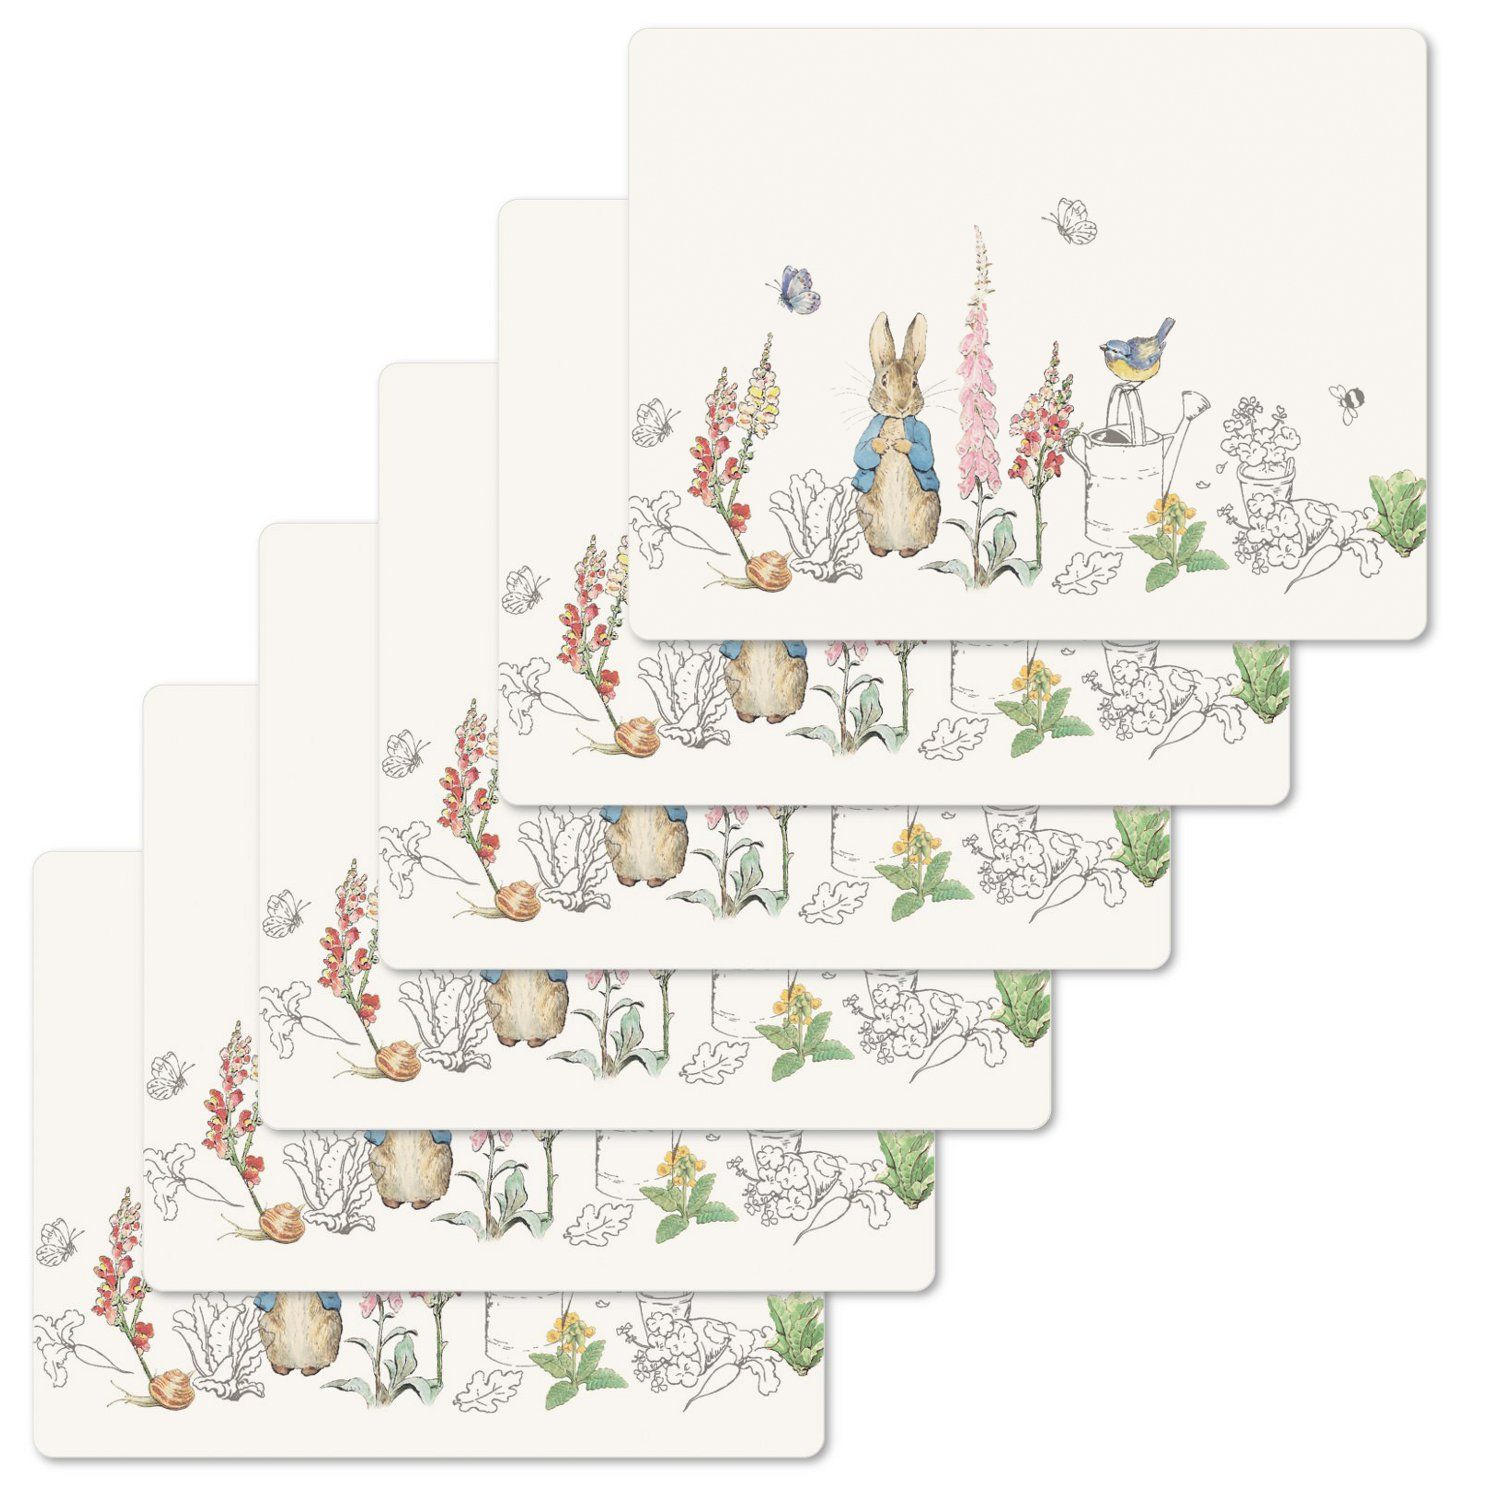 Peter Rabbit Peter Rabbit Classic Tablemats (Set of 6)